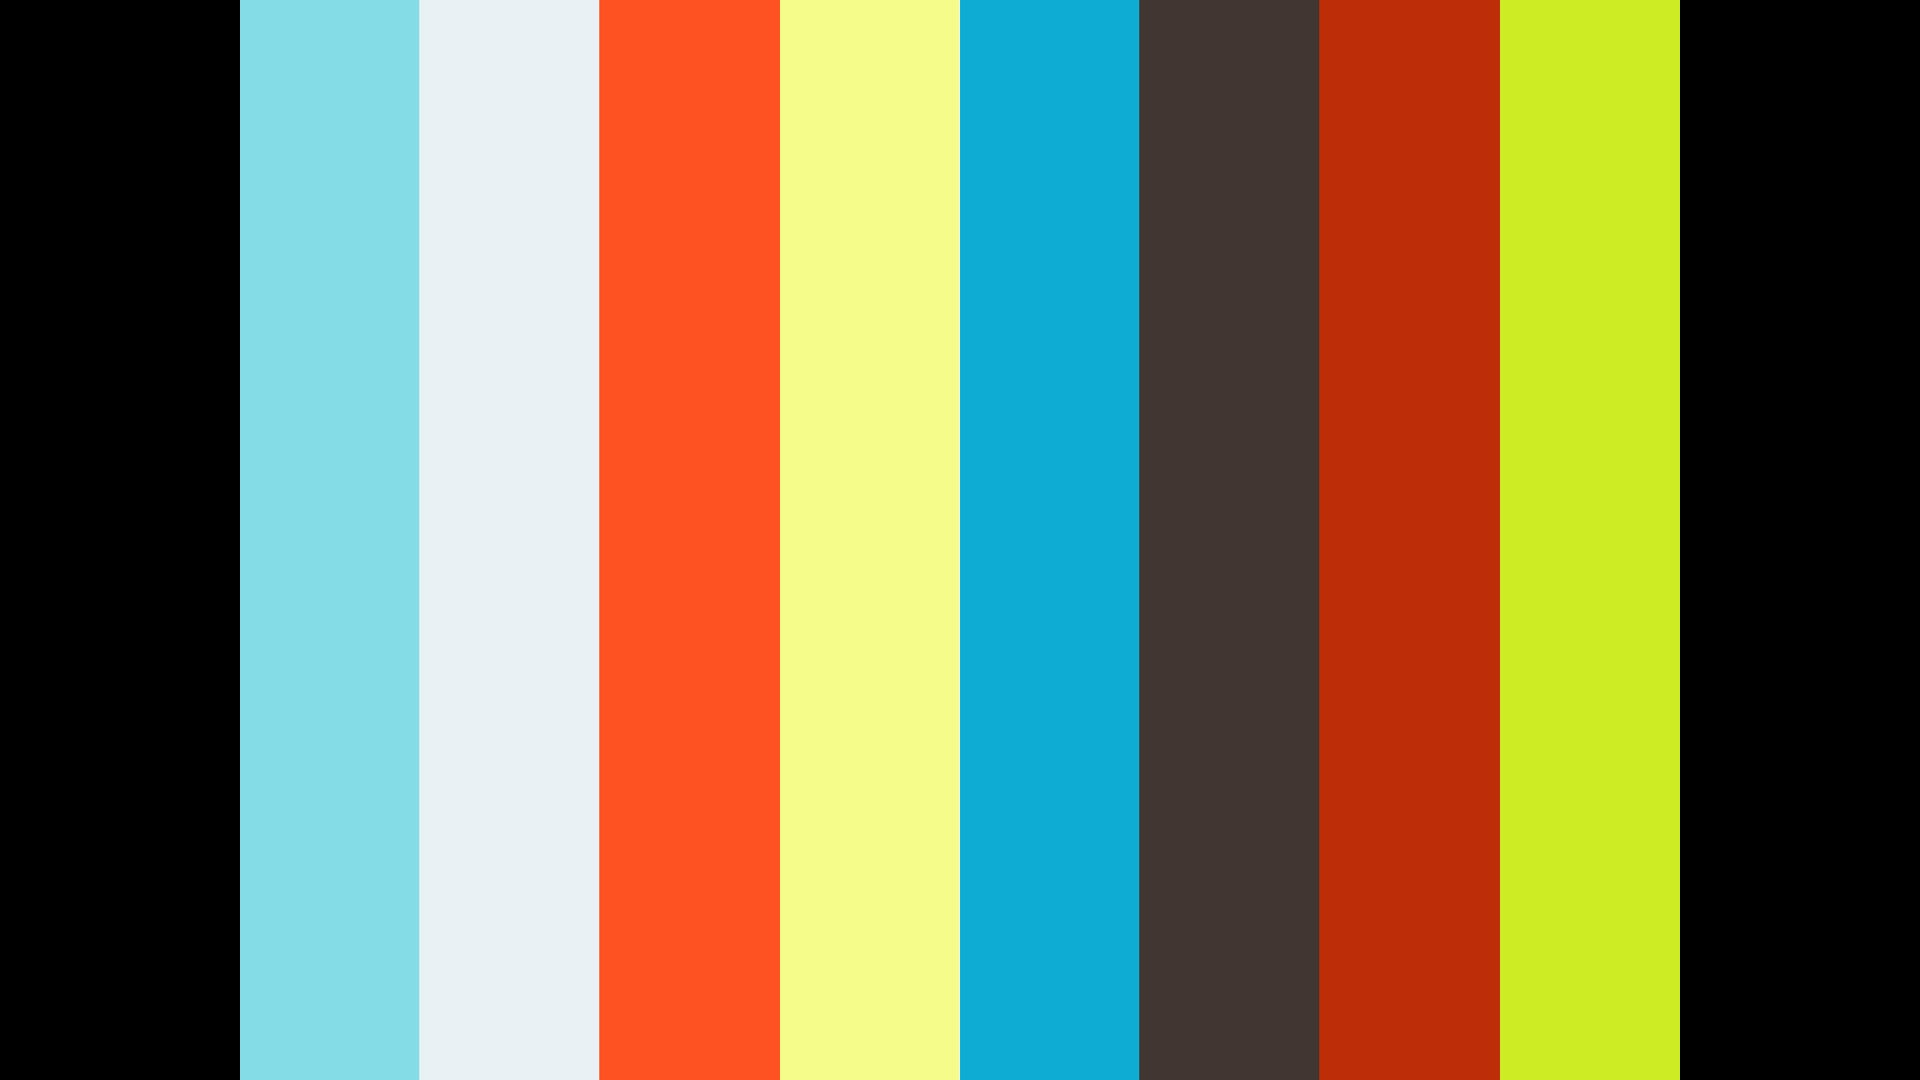 The Pretty Weeds